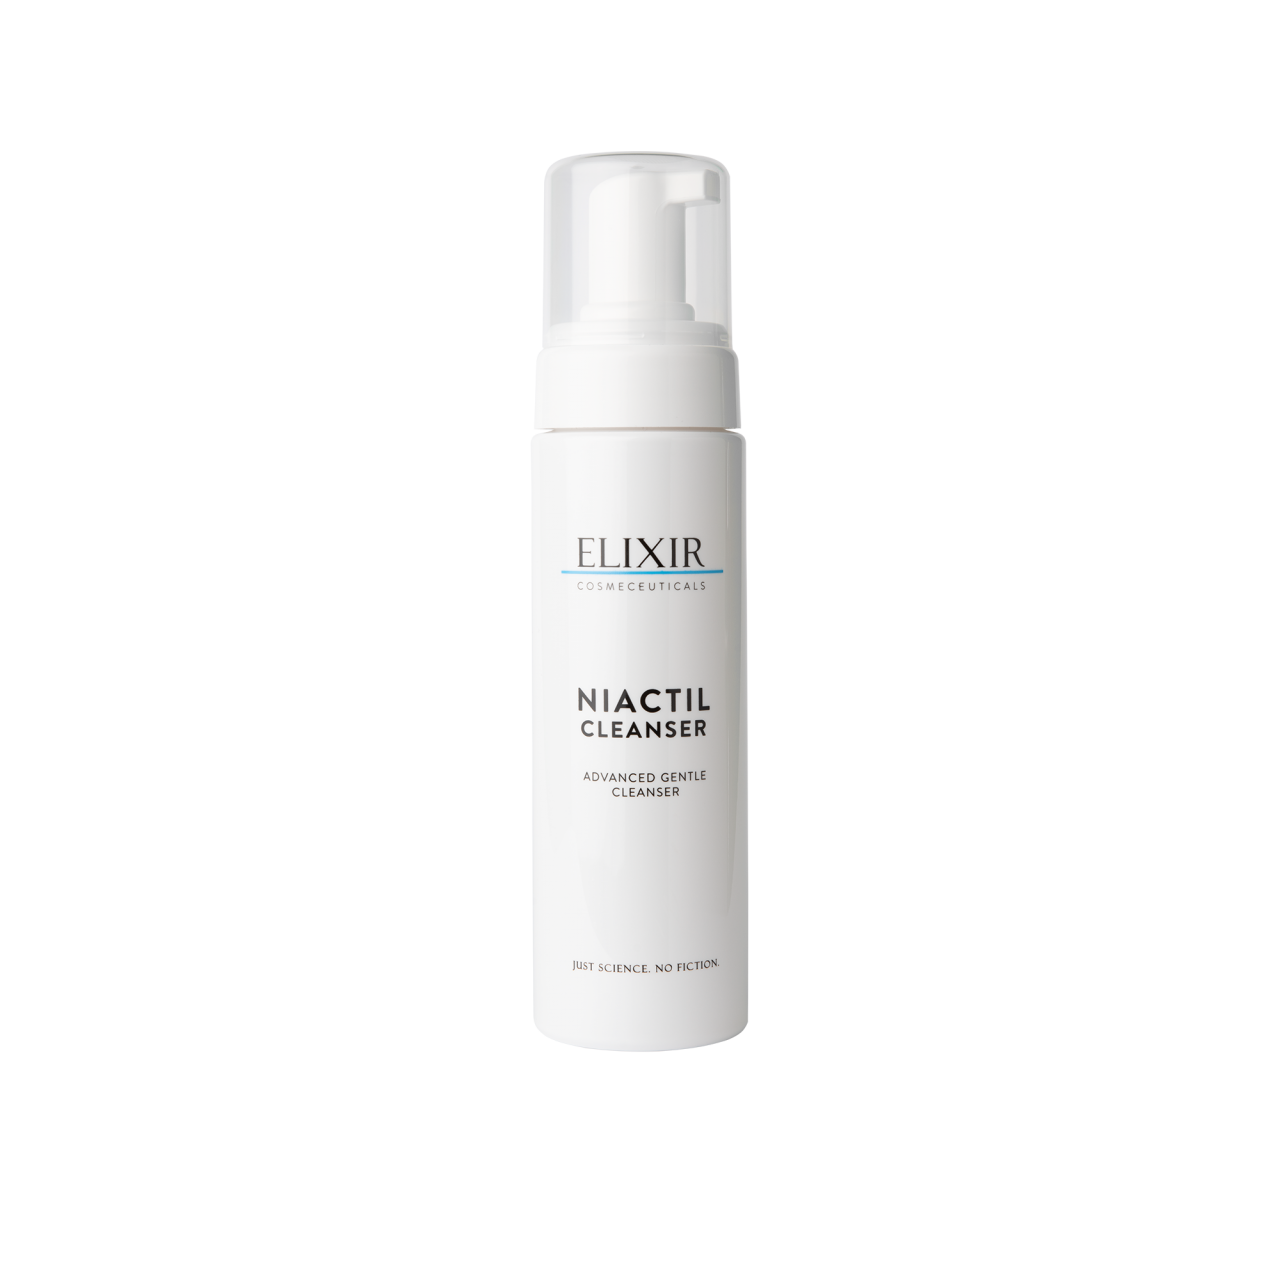 Niactil Cleanser